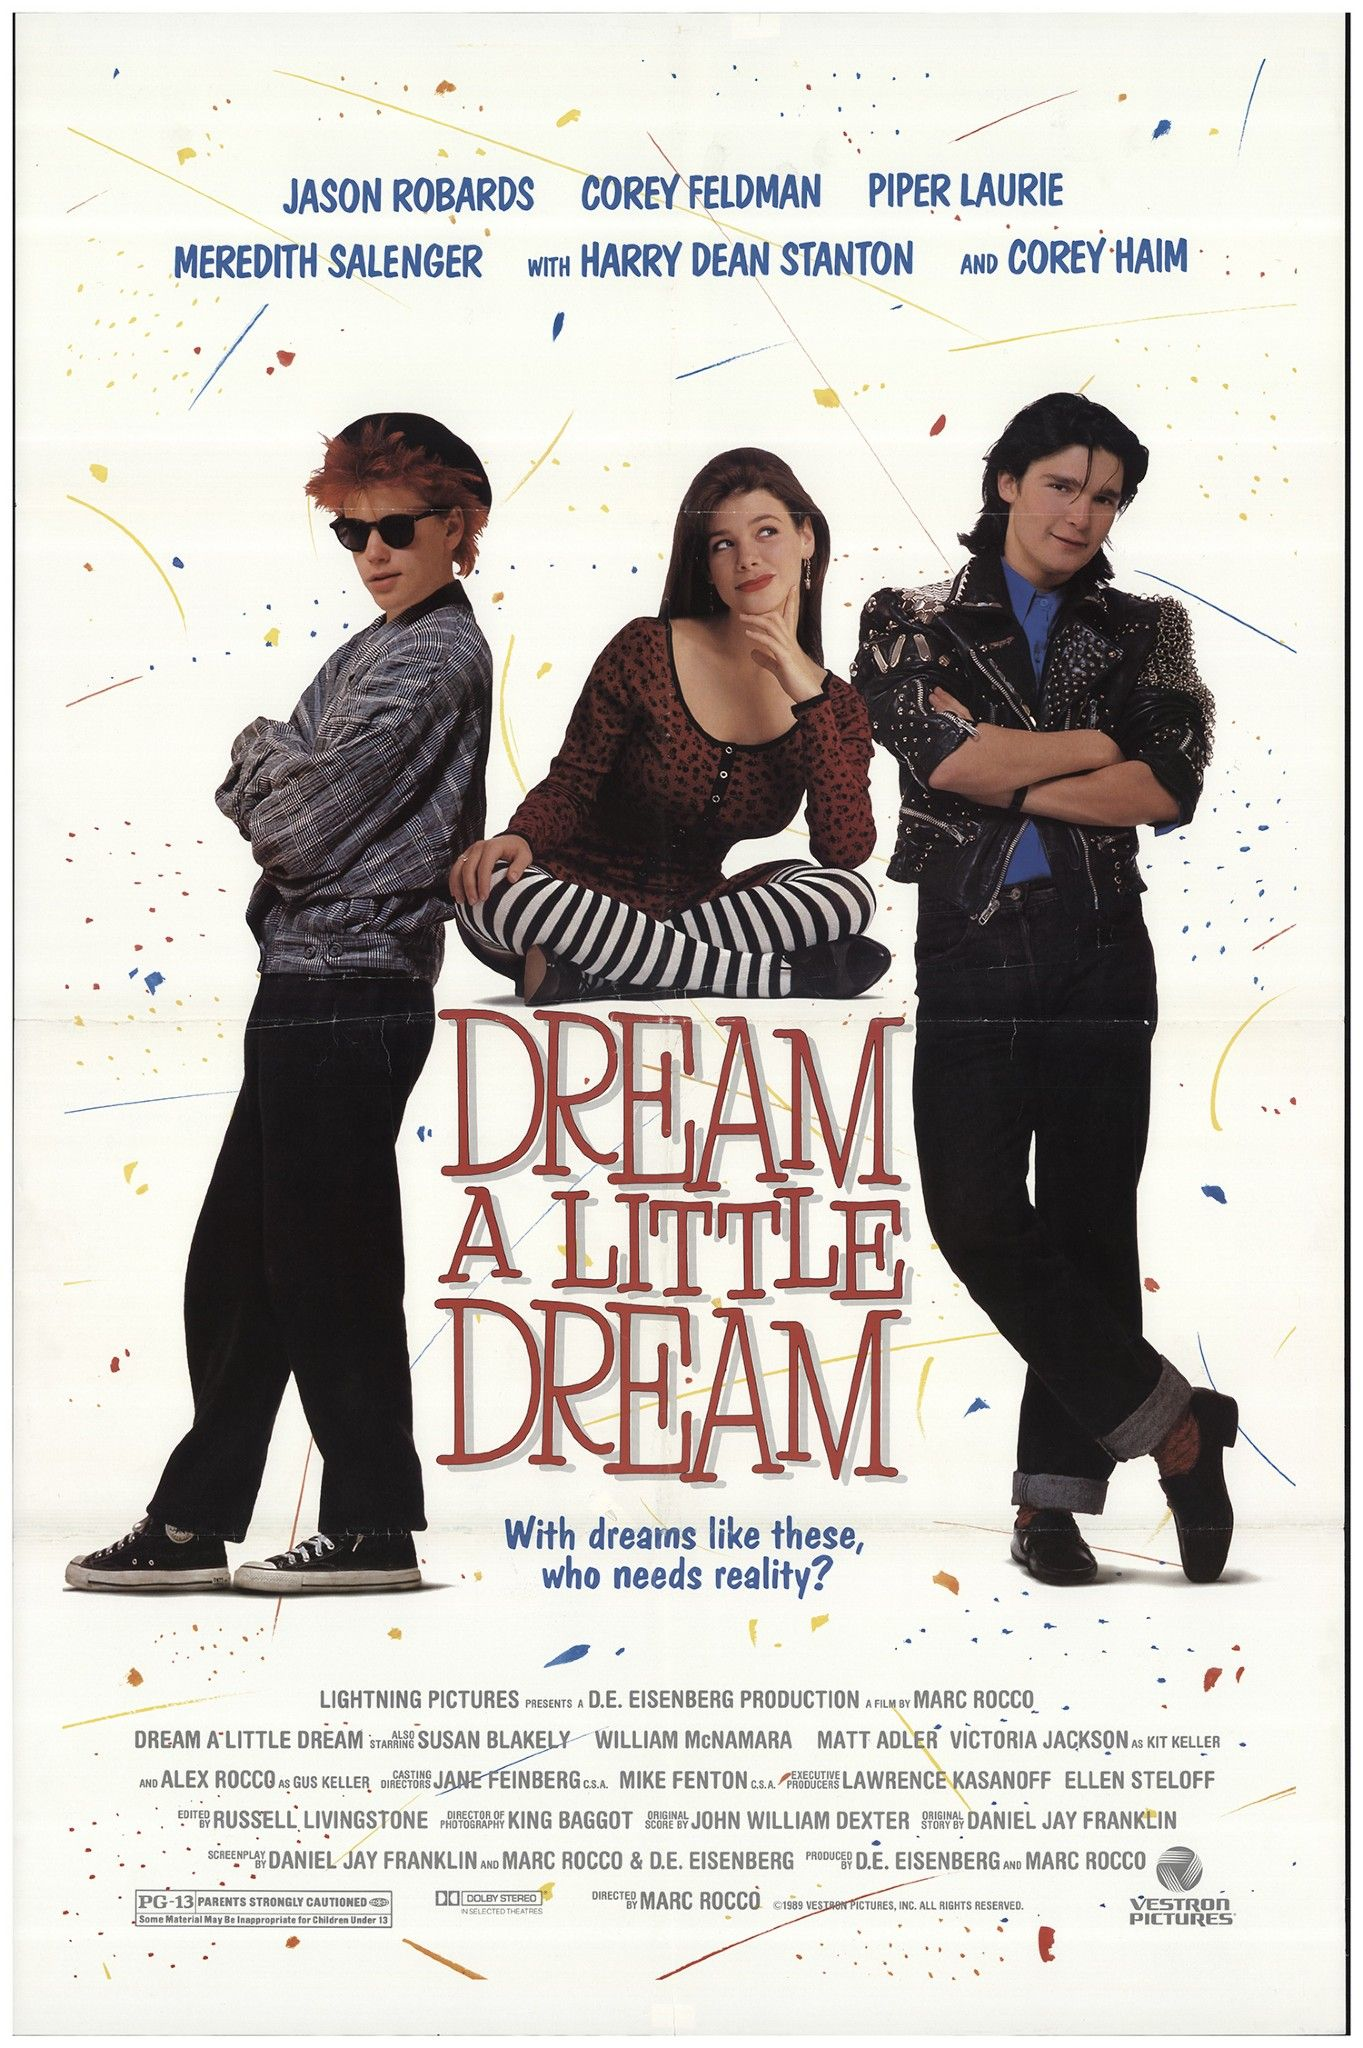 DREAM A LITTLE DREAM 1989 MOVIE POSTERS Pinterest